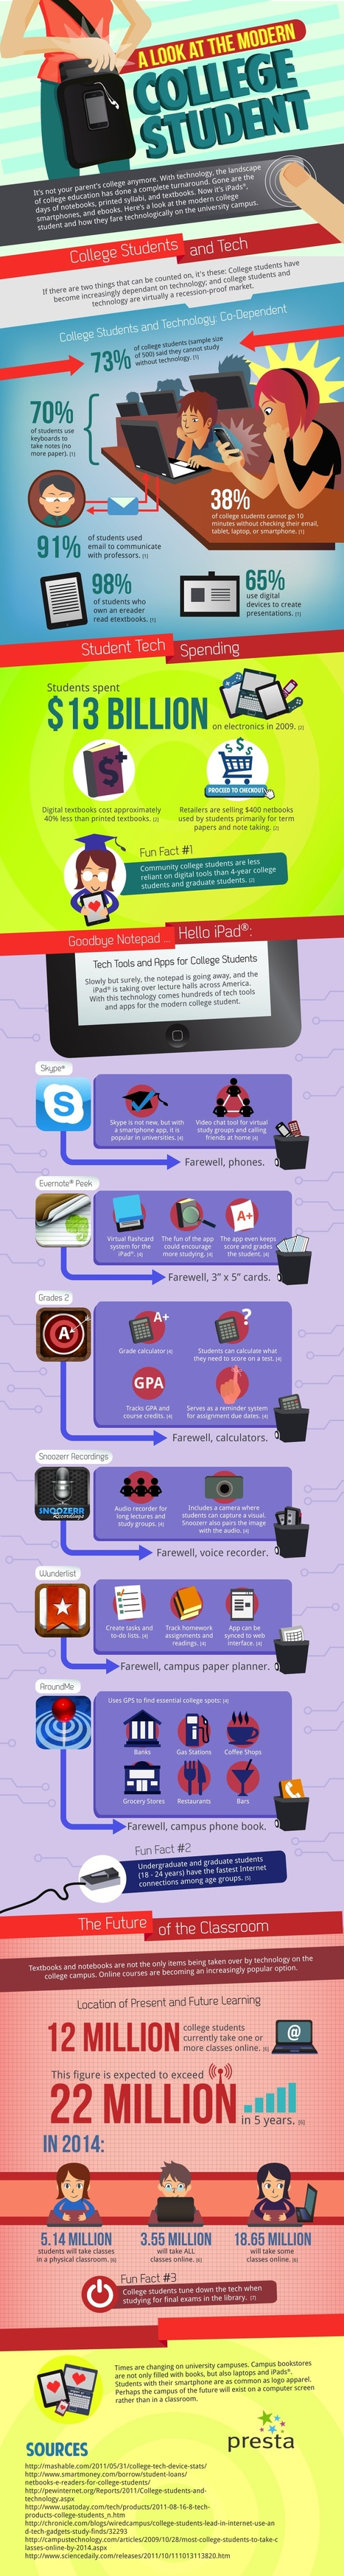 A look at the modern college student | Higher Education Apps | Scoop.it